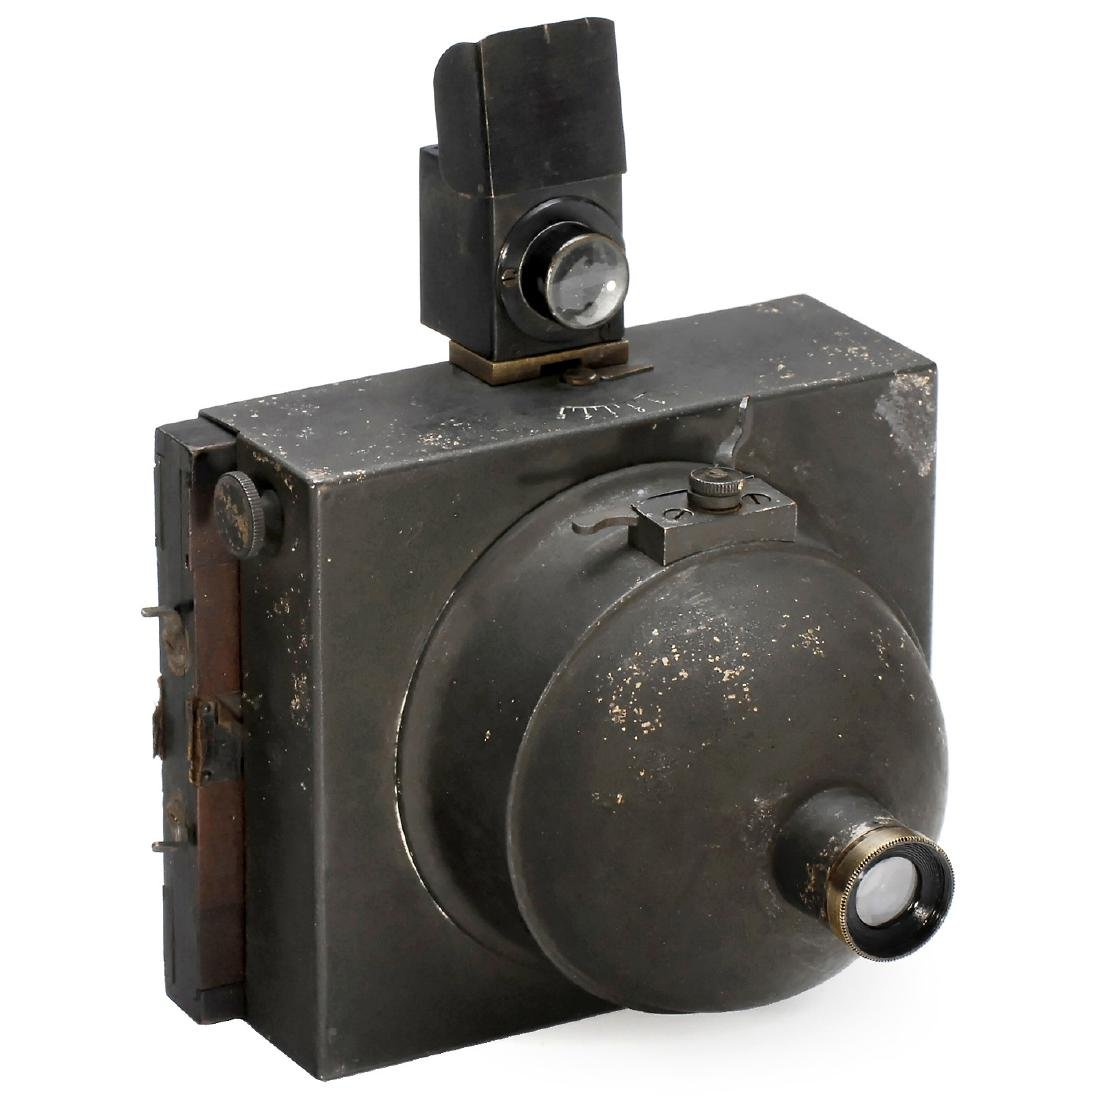 Photosphere All-Metal Camera (8 x 9 cm), 1888